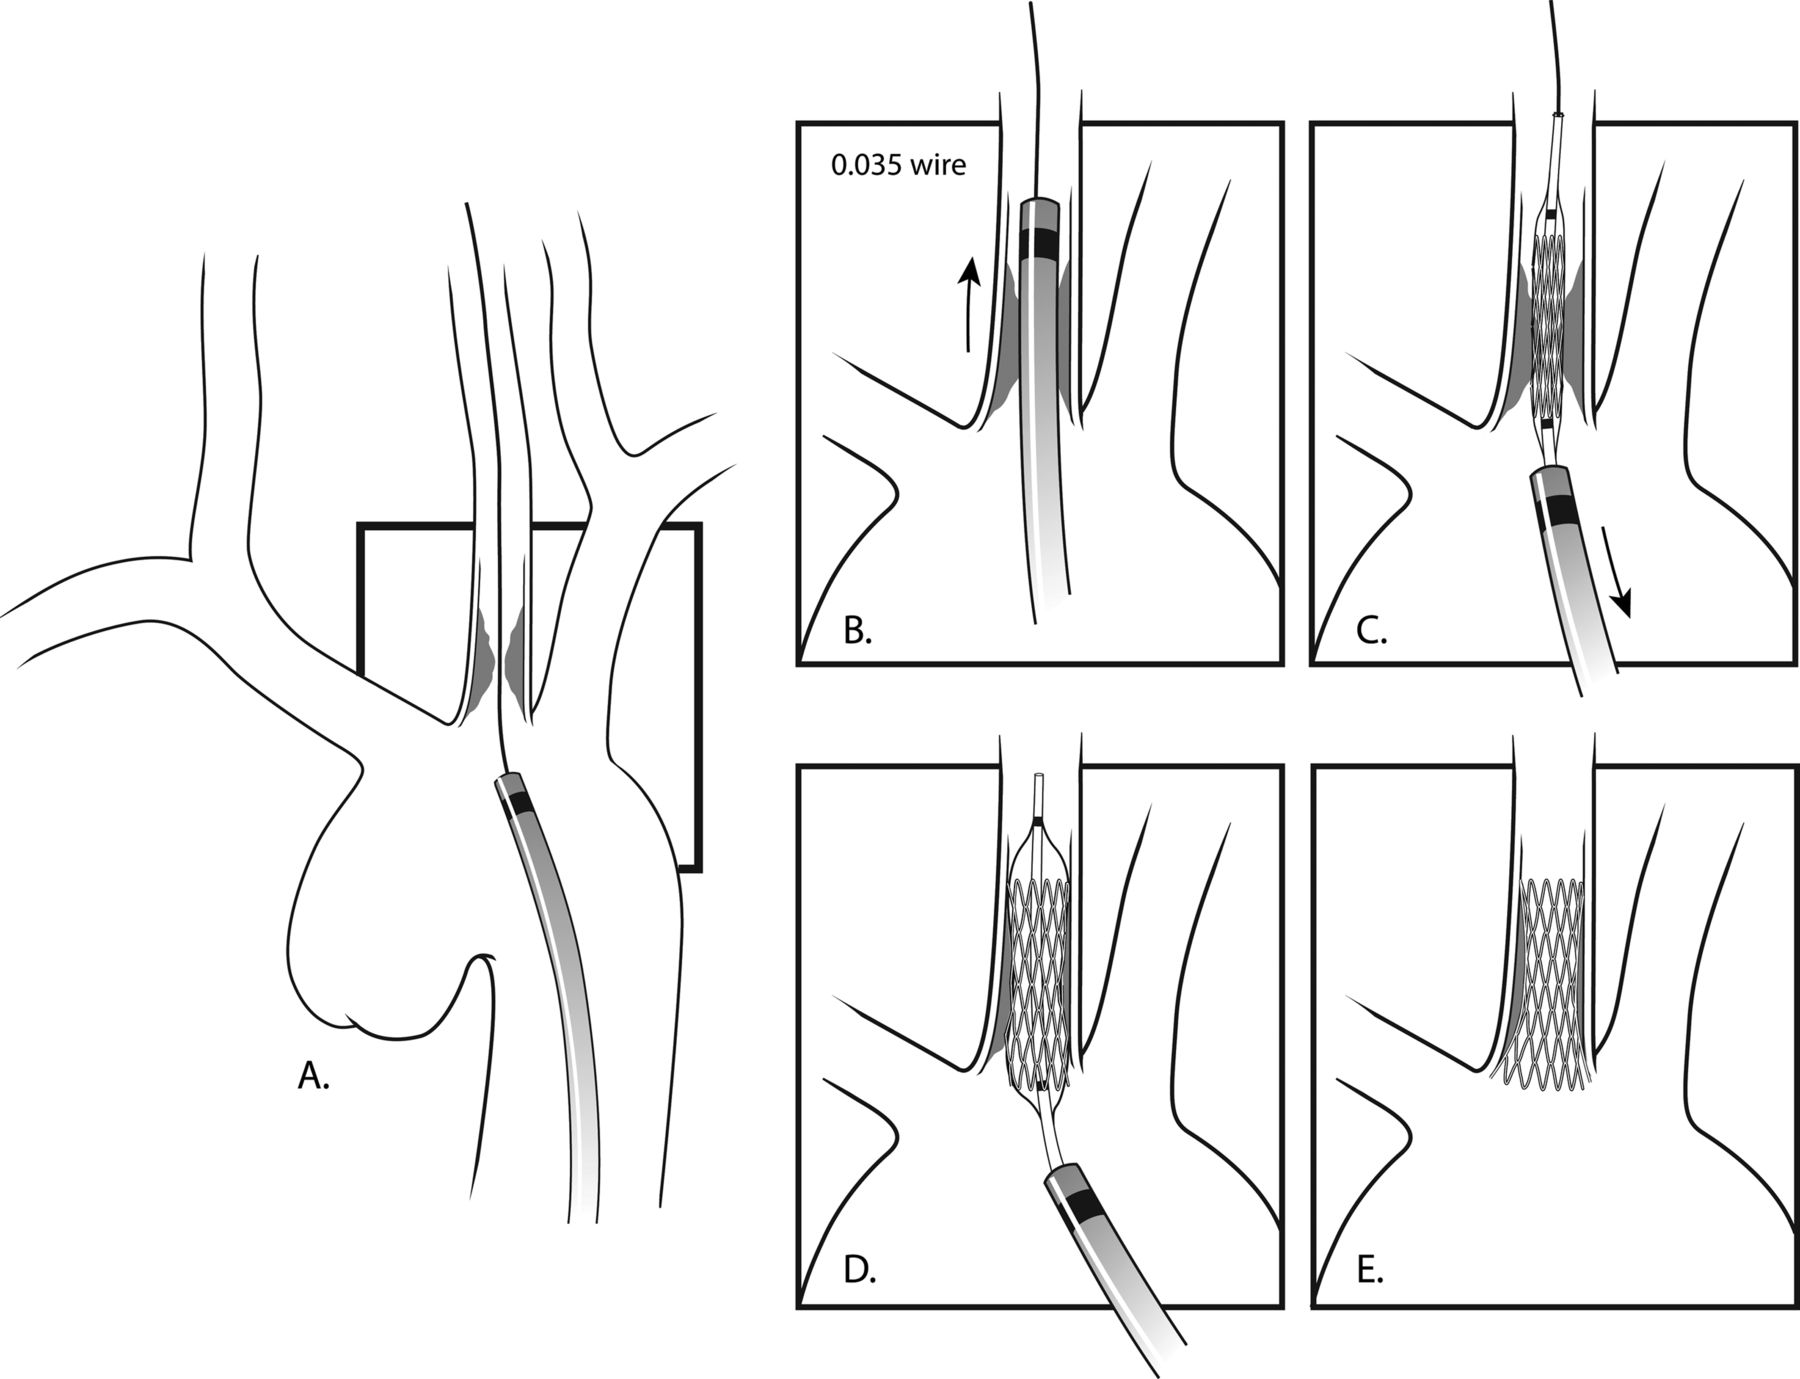 Transfemoral Endovascular Treatment Of Atherosclerotic Stenotic